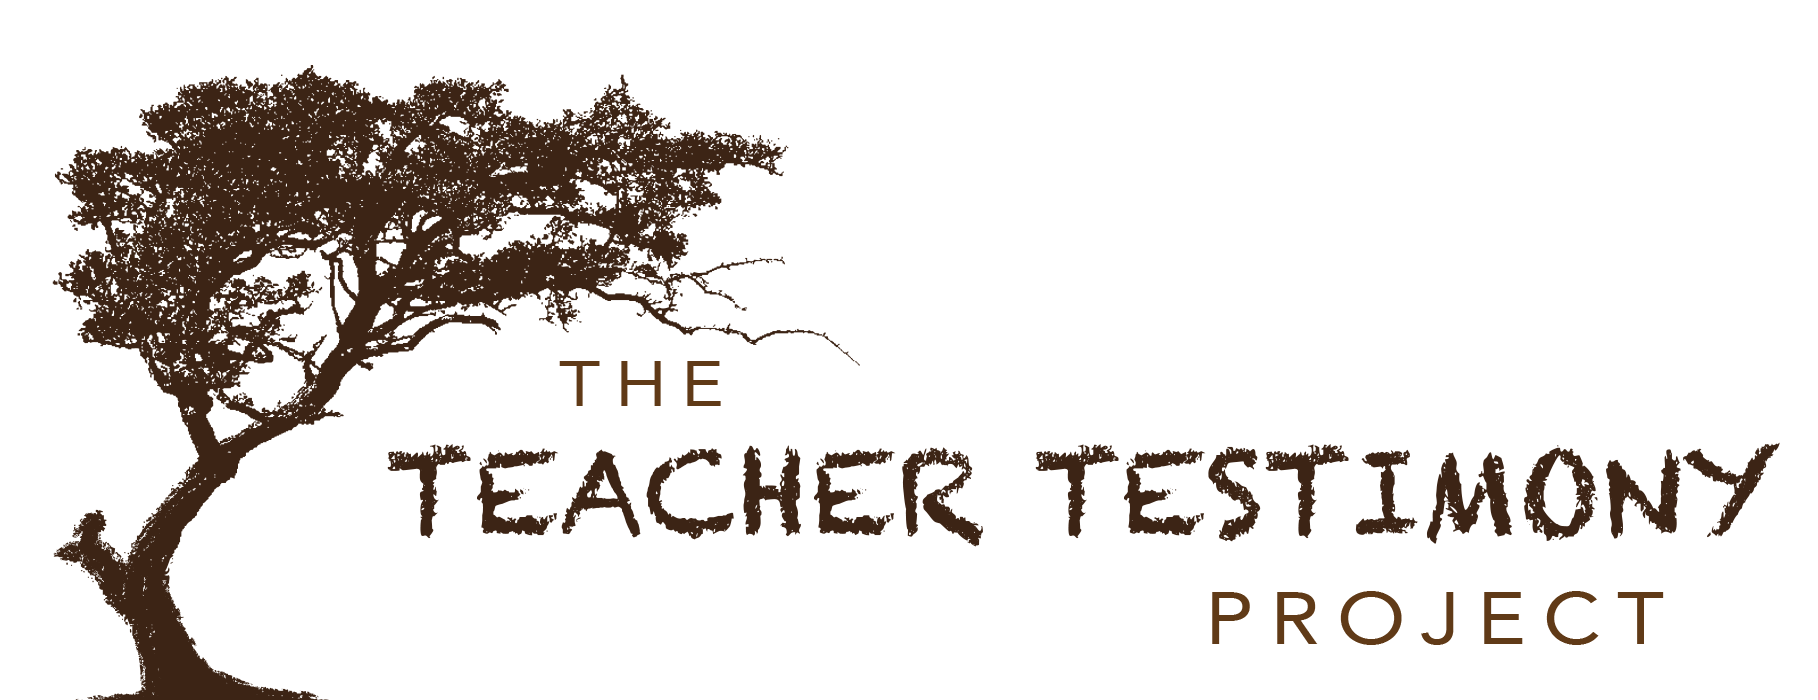 Teacher Testimony Project